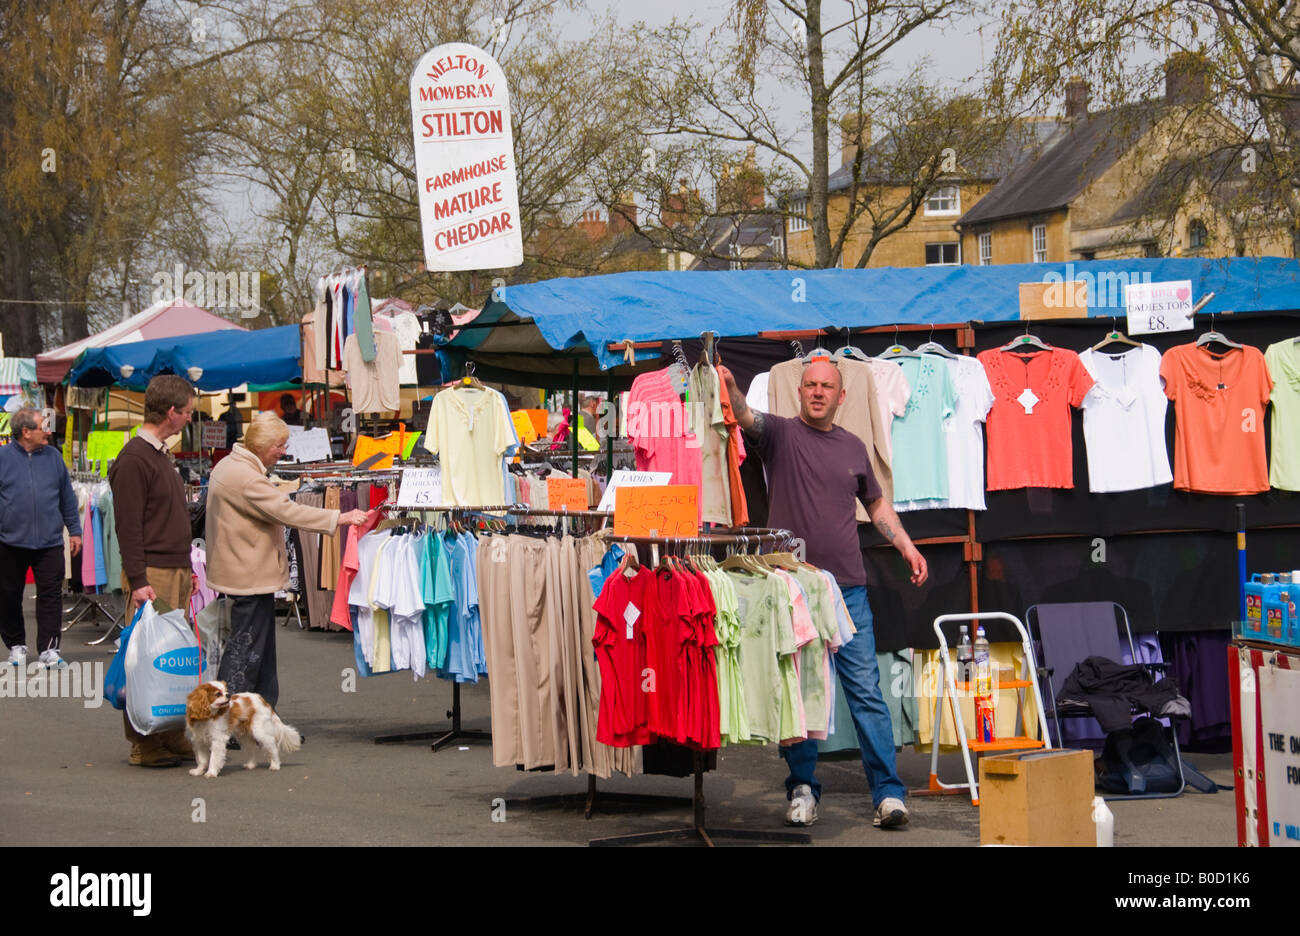 Weekly market in Moreton in Marsh Cotswolds Gloucestershire England UK EU - Stock Image